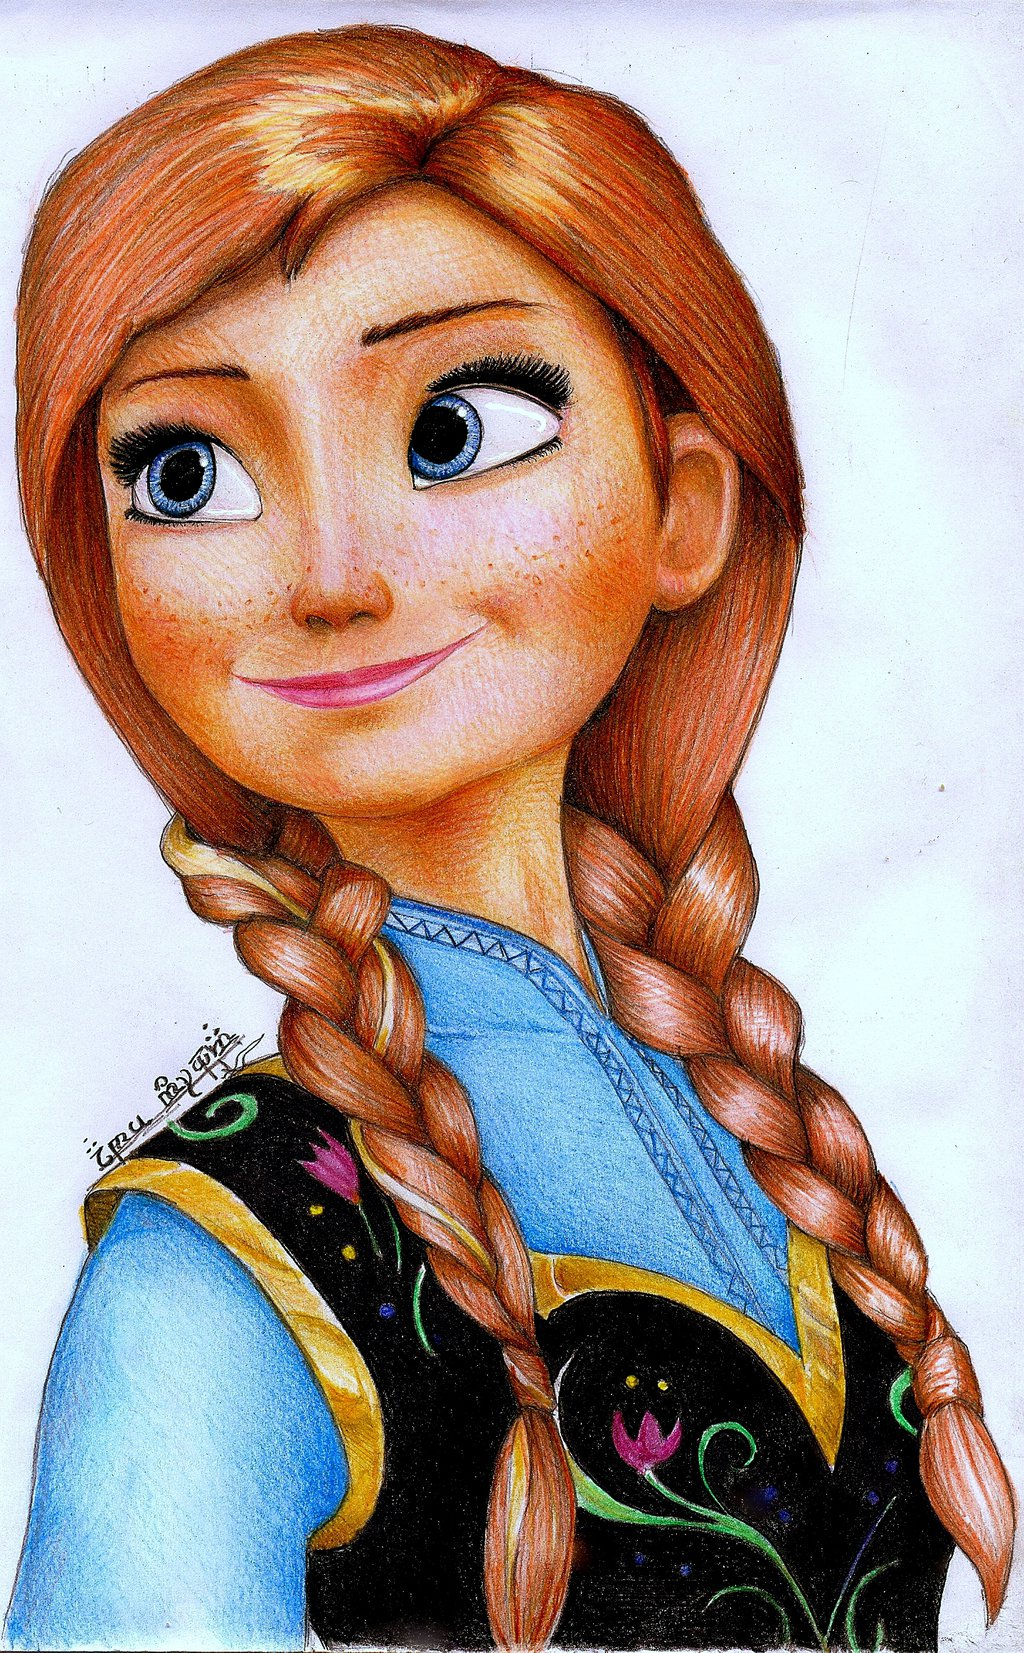 Drawn princess frozen princess FROZEN by From ANNA ANNA